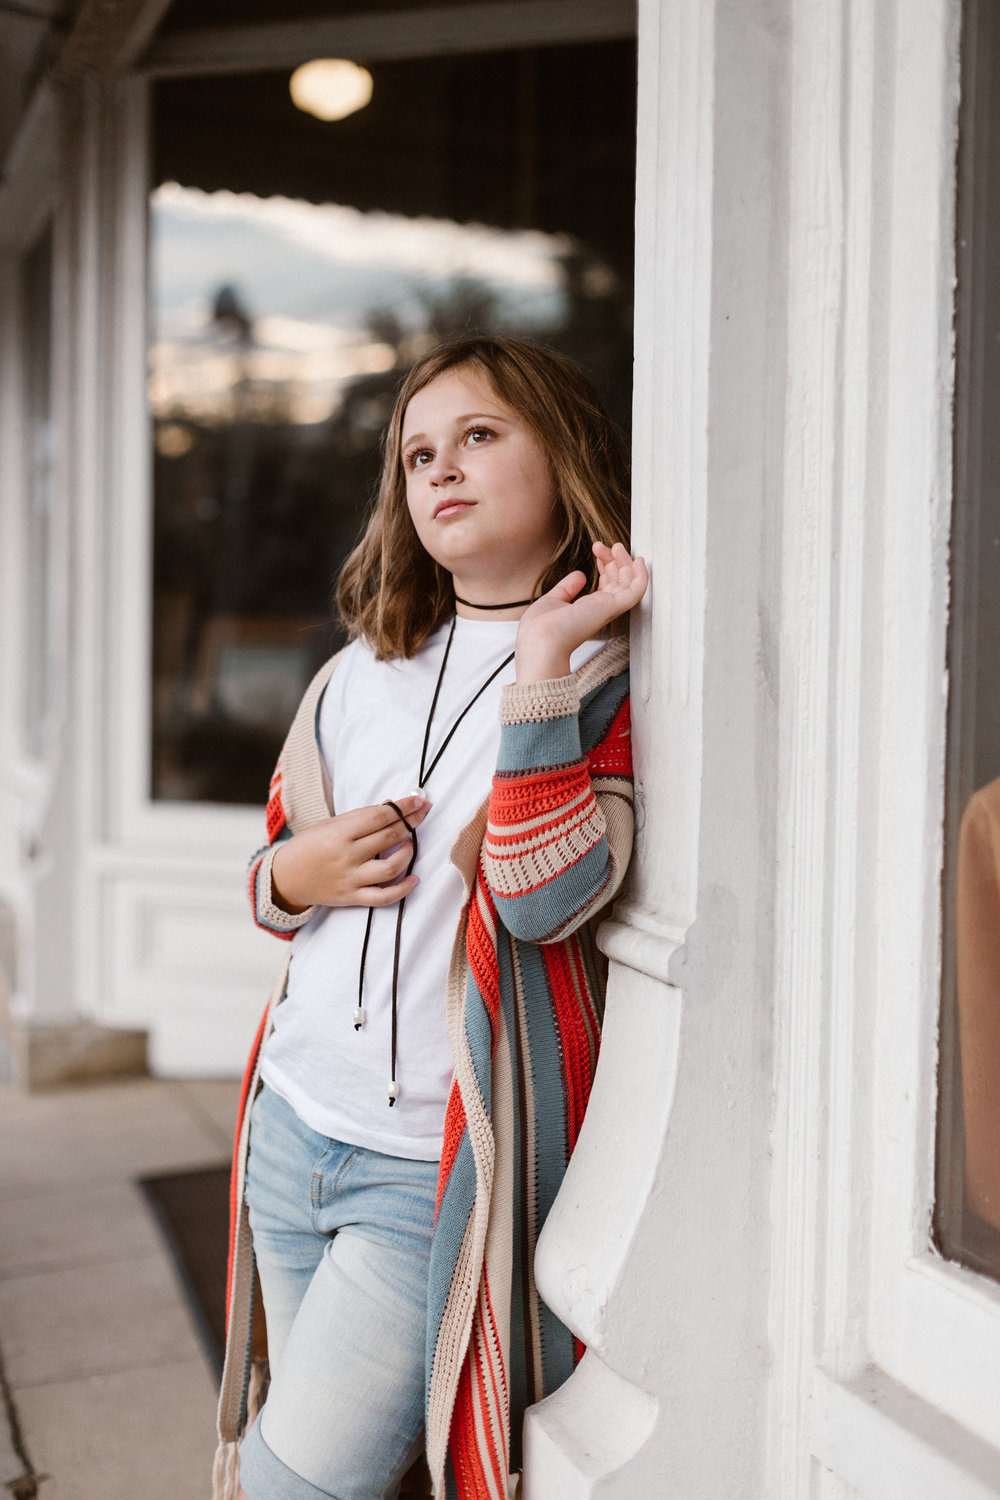 A tween portrait session by Chris Ginn Photography in Franklinton, Louisiana is a great way to capture those magical moments of the wonder years and build self-esteem through beautiful lifestyle portraits.